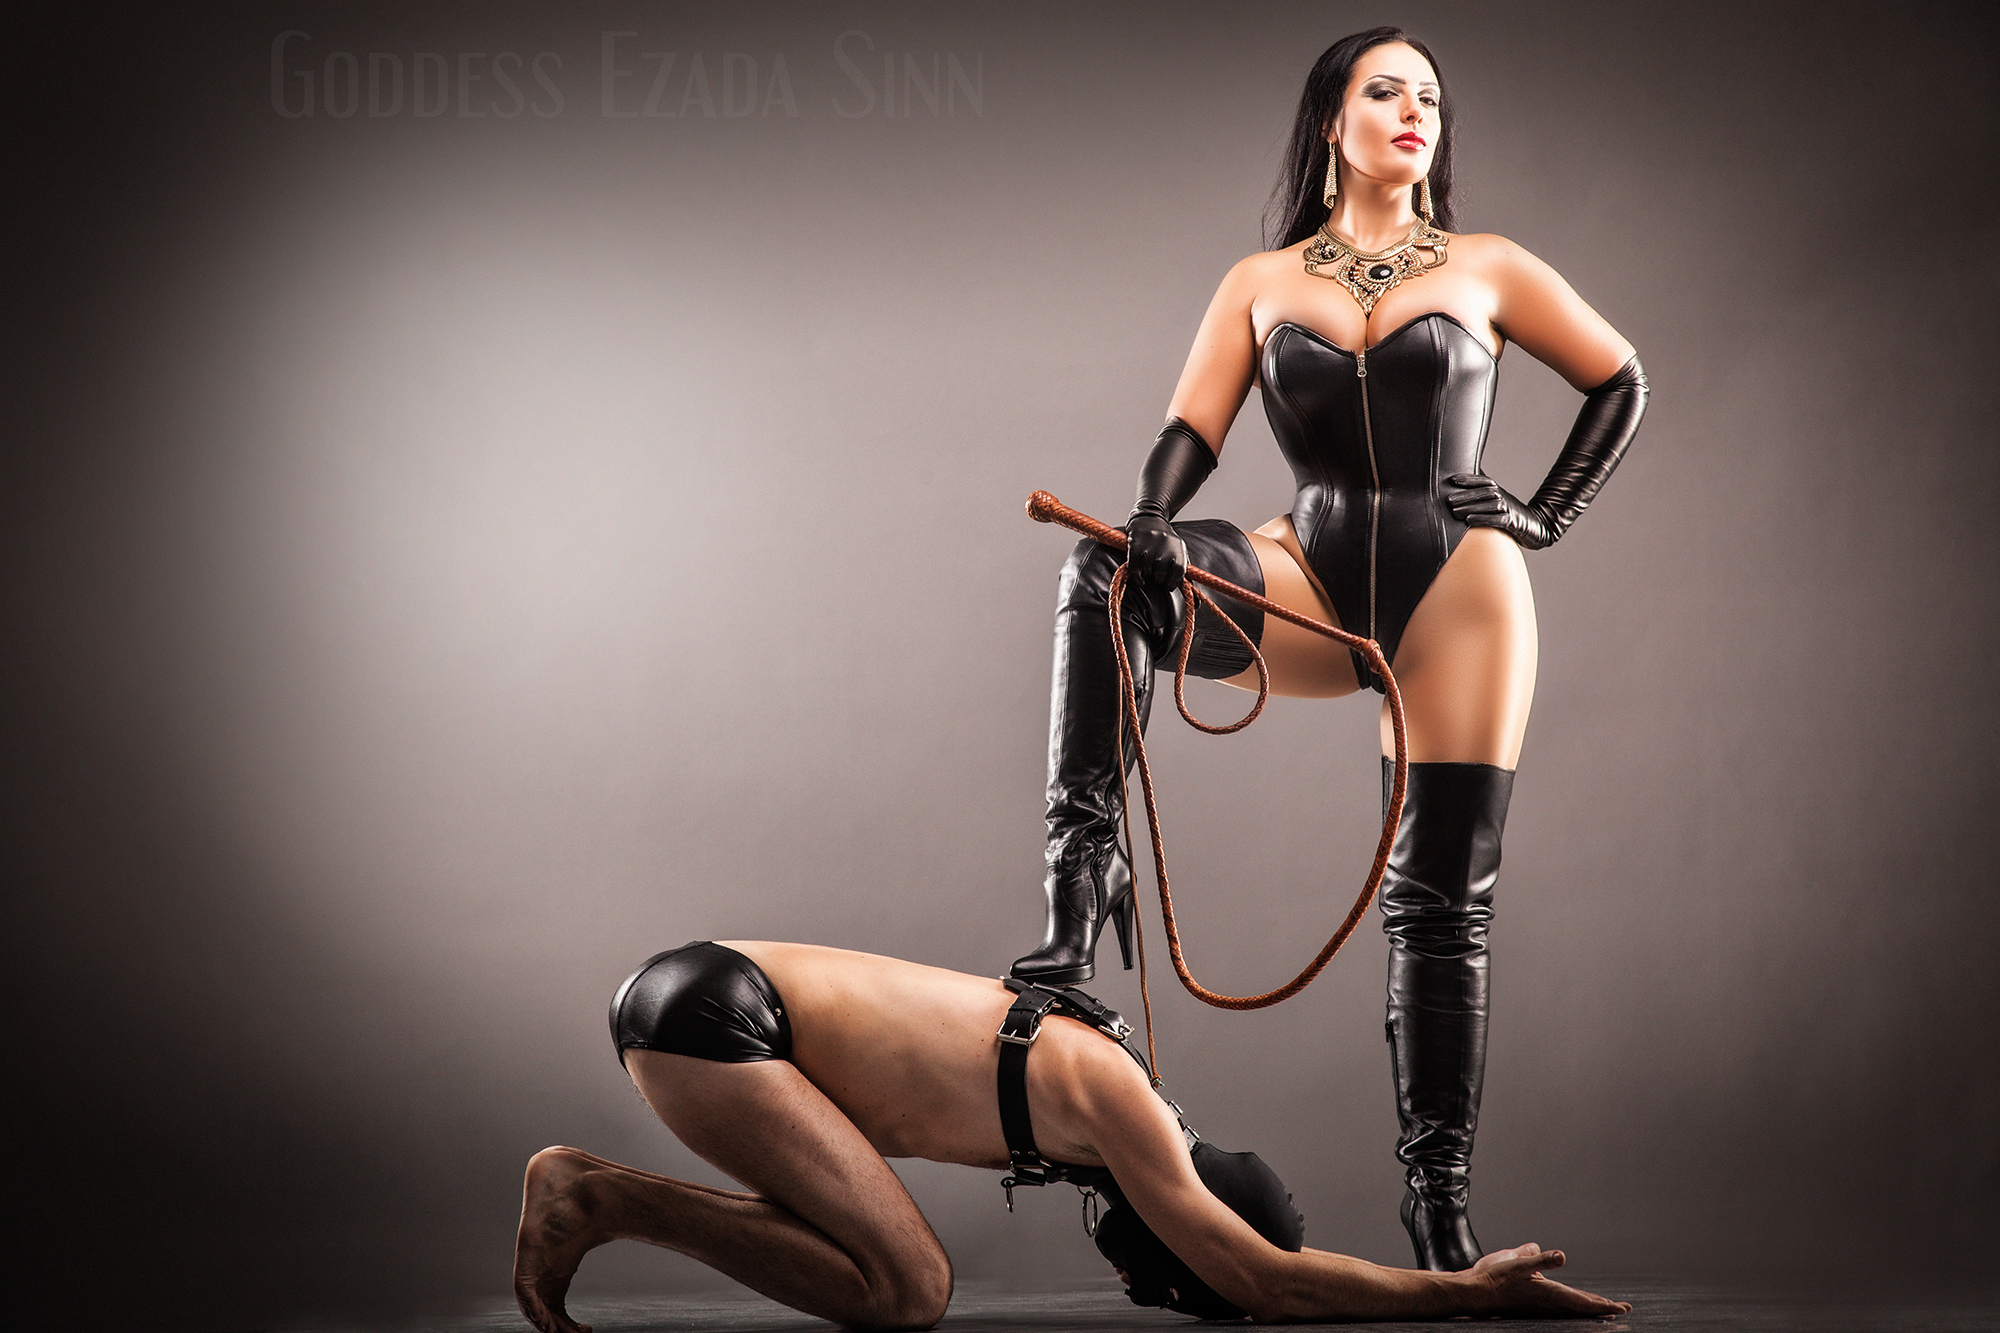 Dominatrix stockade bondage video